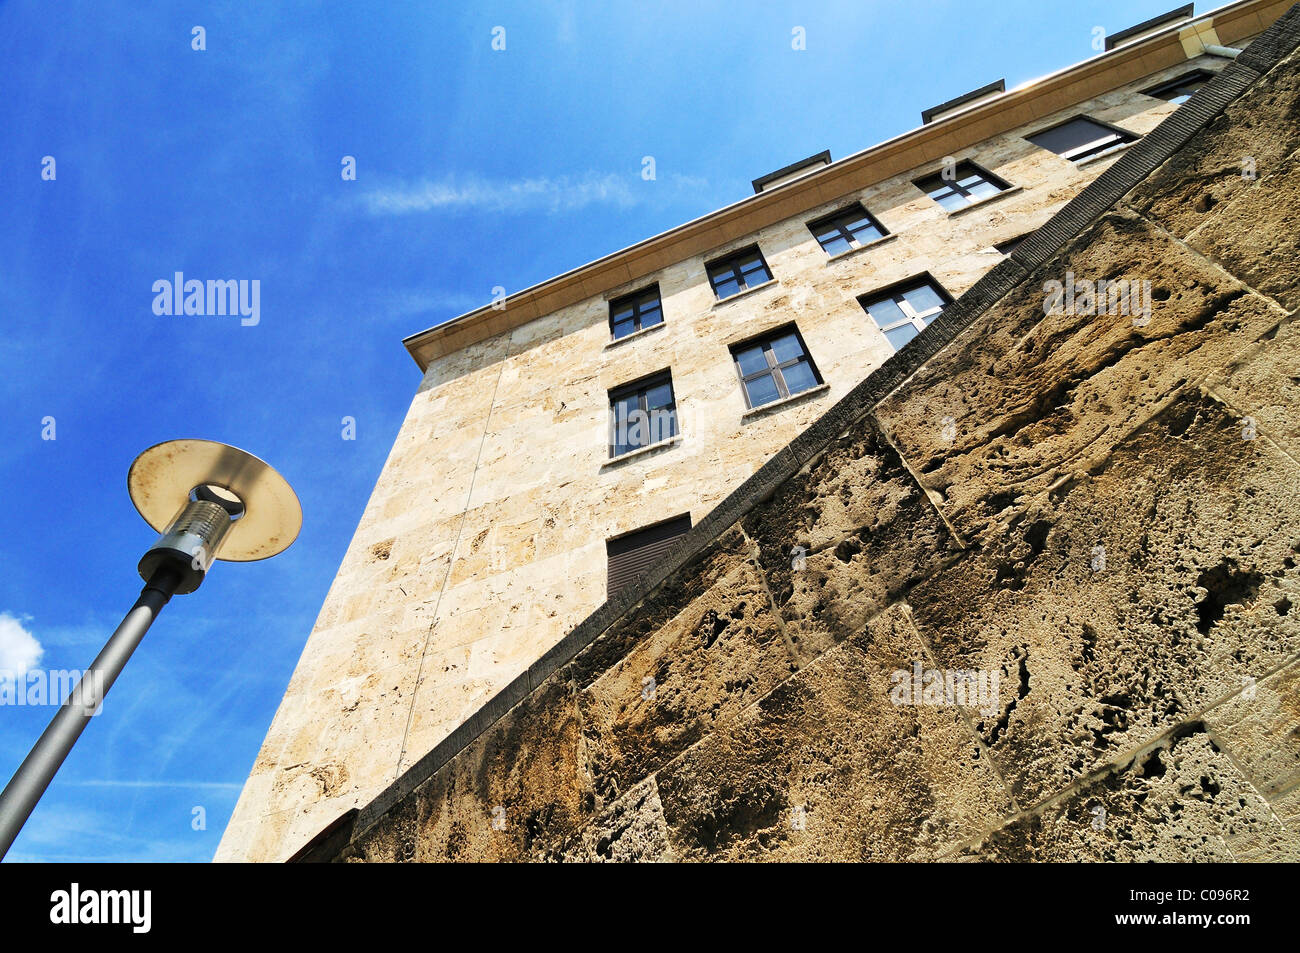 Wall and street lamp in front of the former McGraw Kaserne barracks, Munich, Bavaria, Germany, Europe - Stock Image